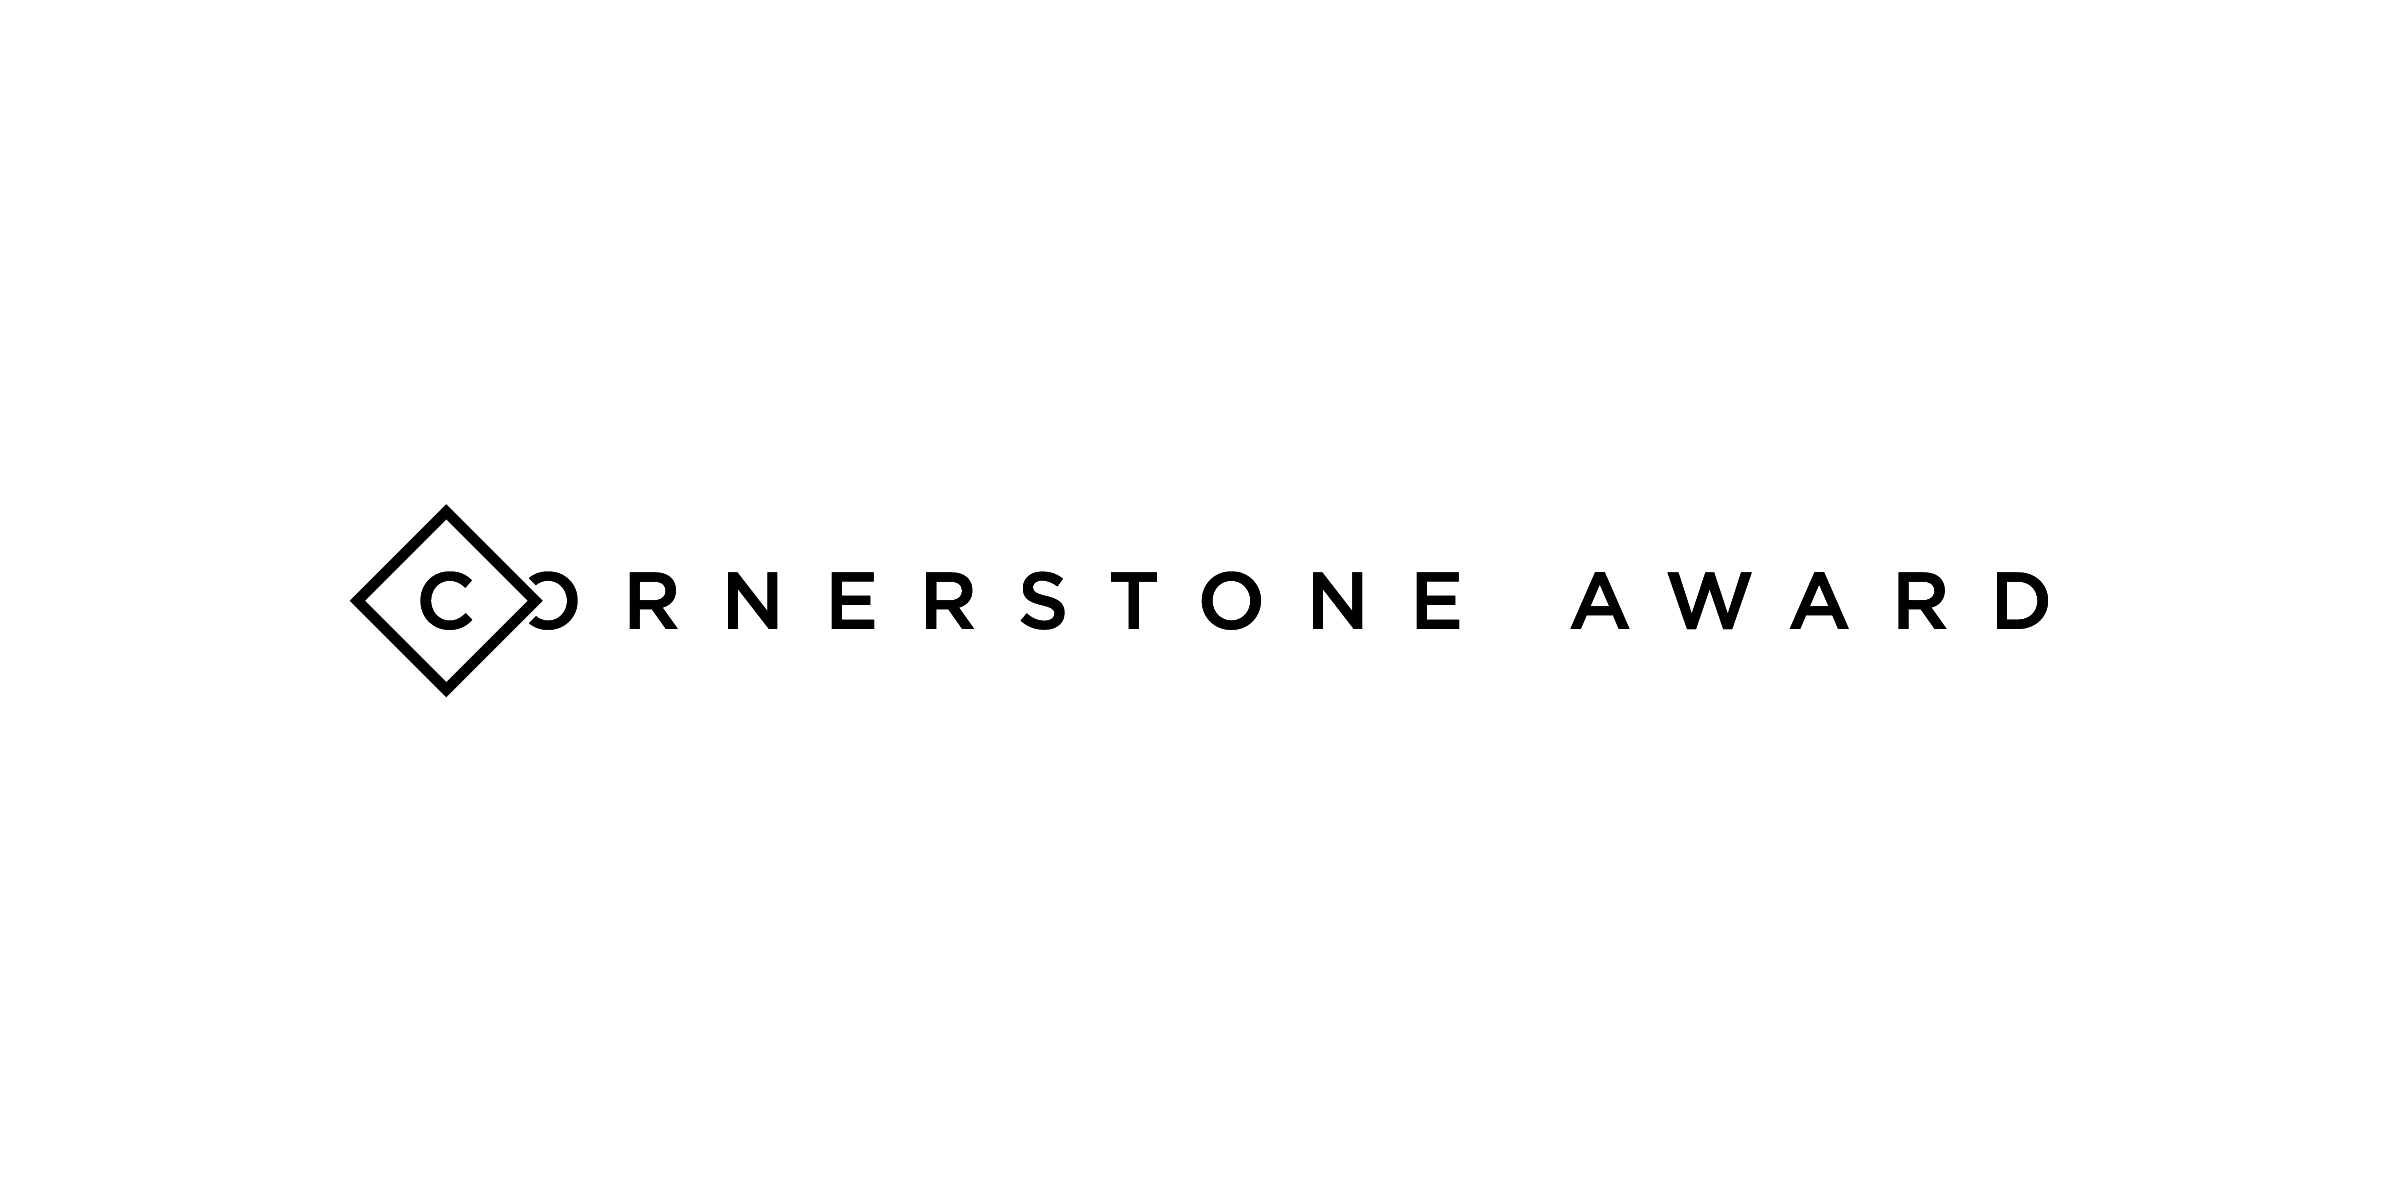 CornerstoneAward-01.jpg